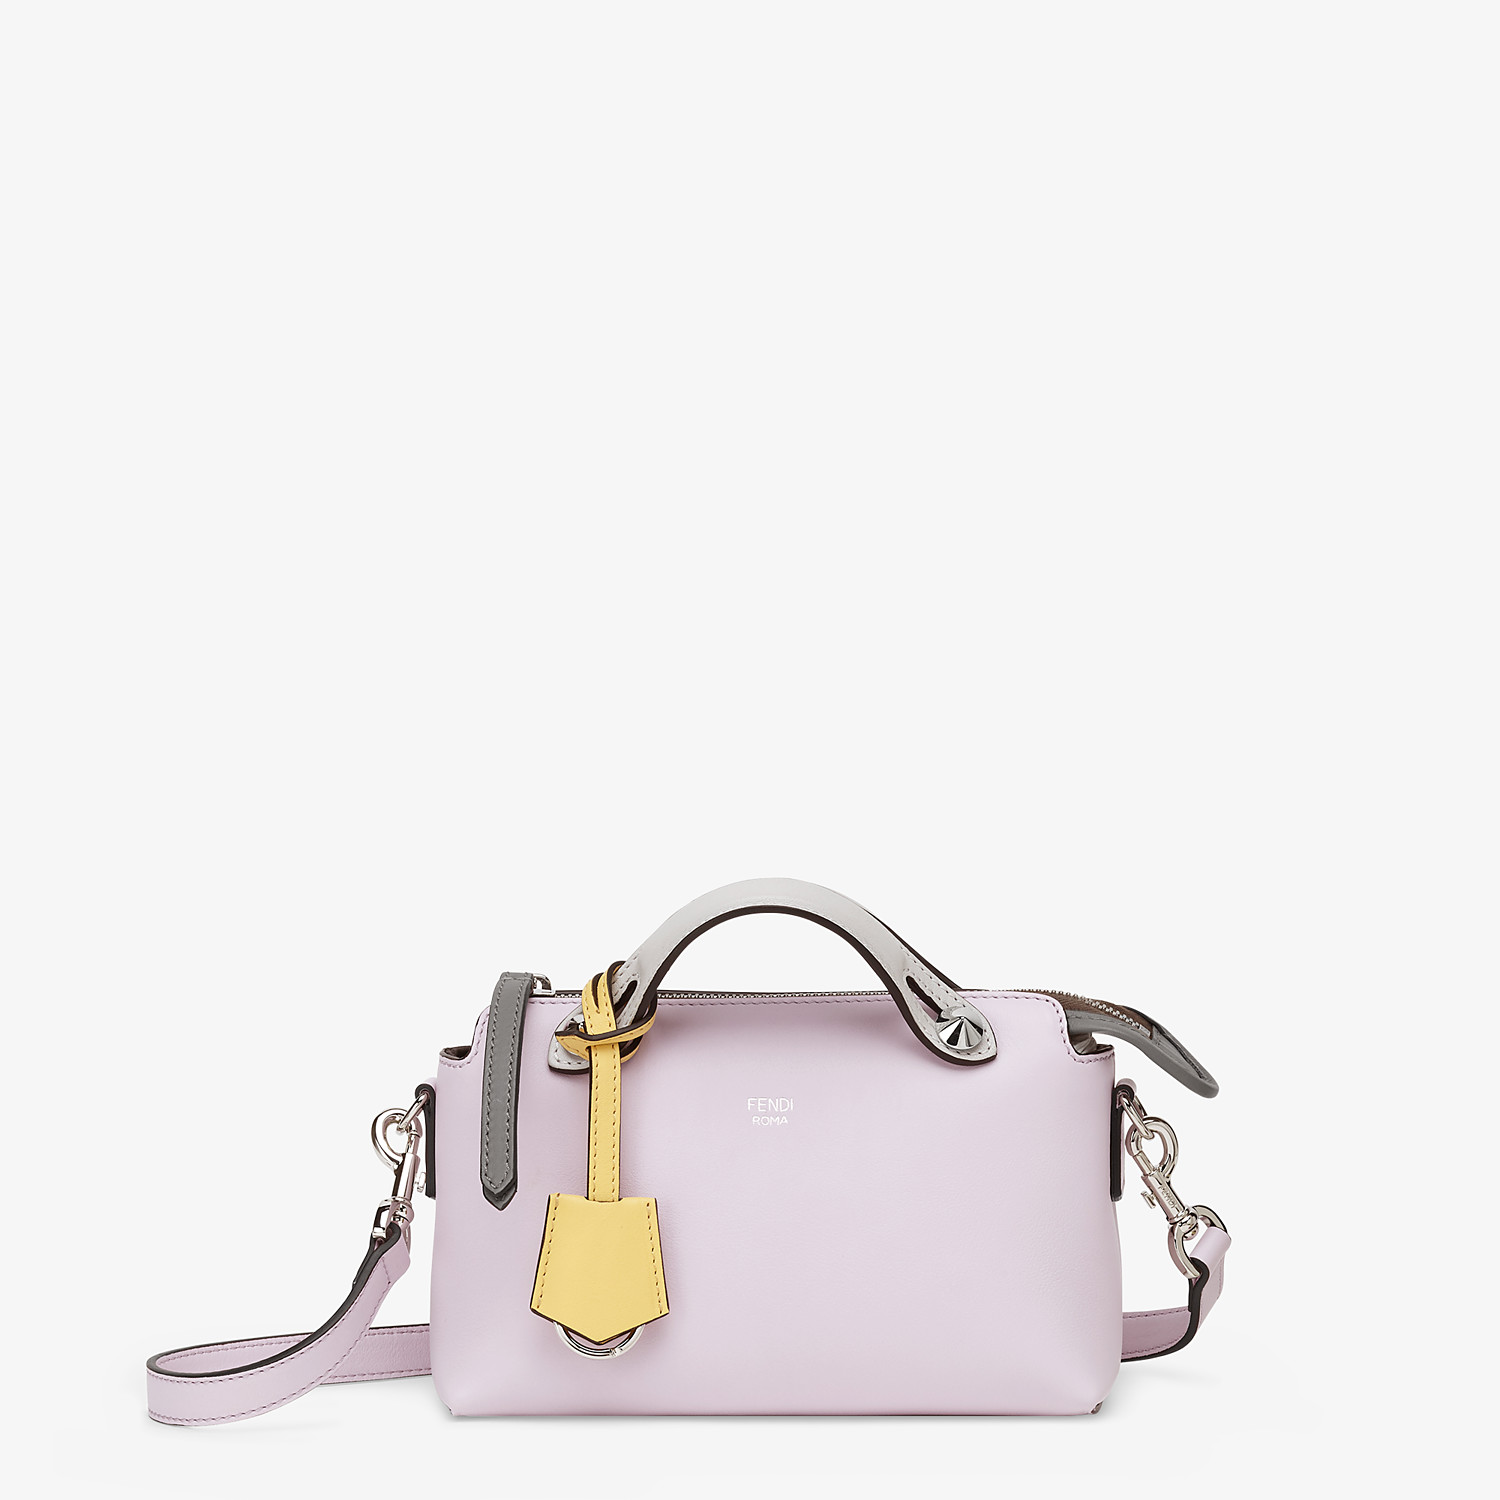 FENDI BY THE WAY MINI - Multicolor leather Boston bag - view 1 detail